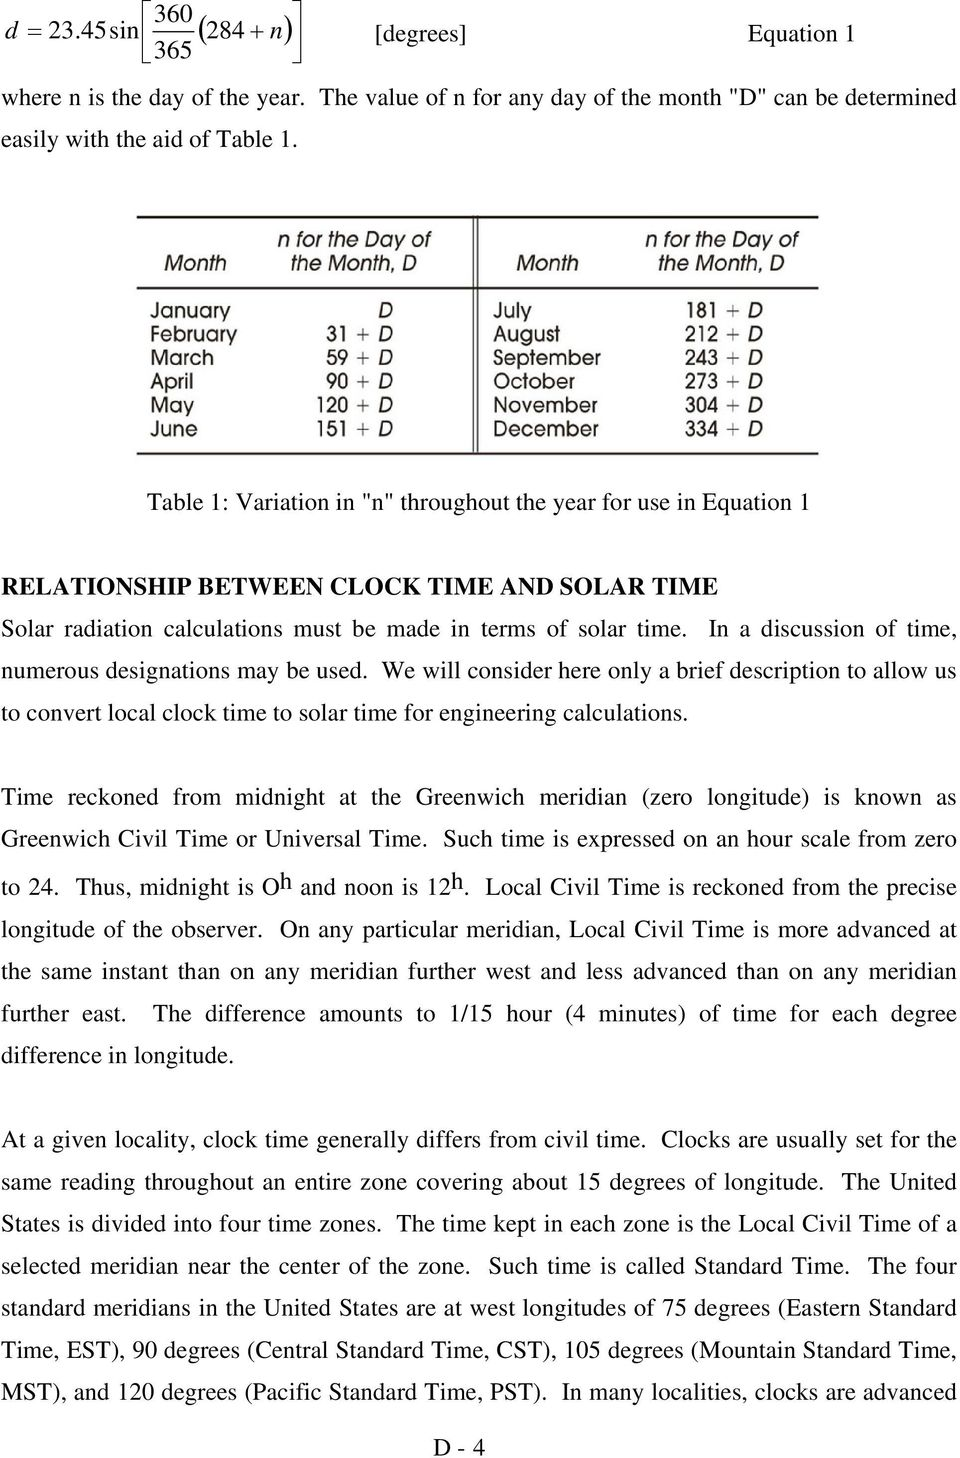 In a discussion of time, numerous designations may be used. We will consider here only a brief description to allow us to convert local clock time to solar time for engineering calculations.